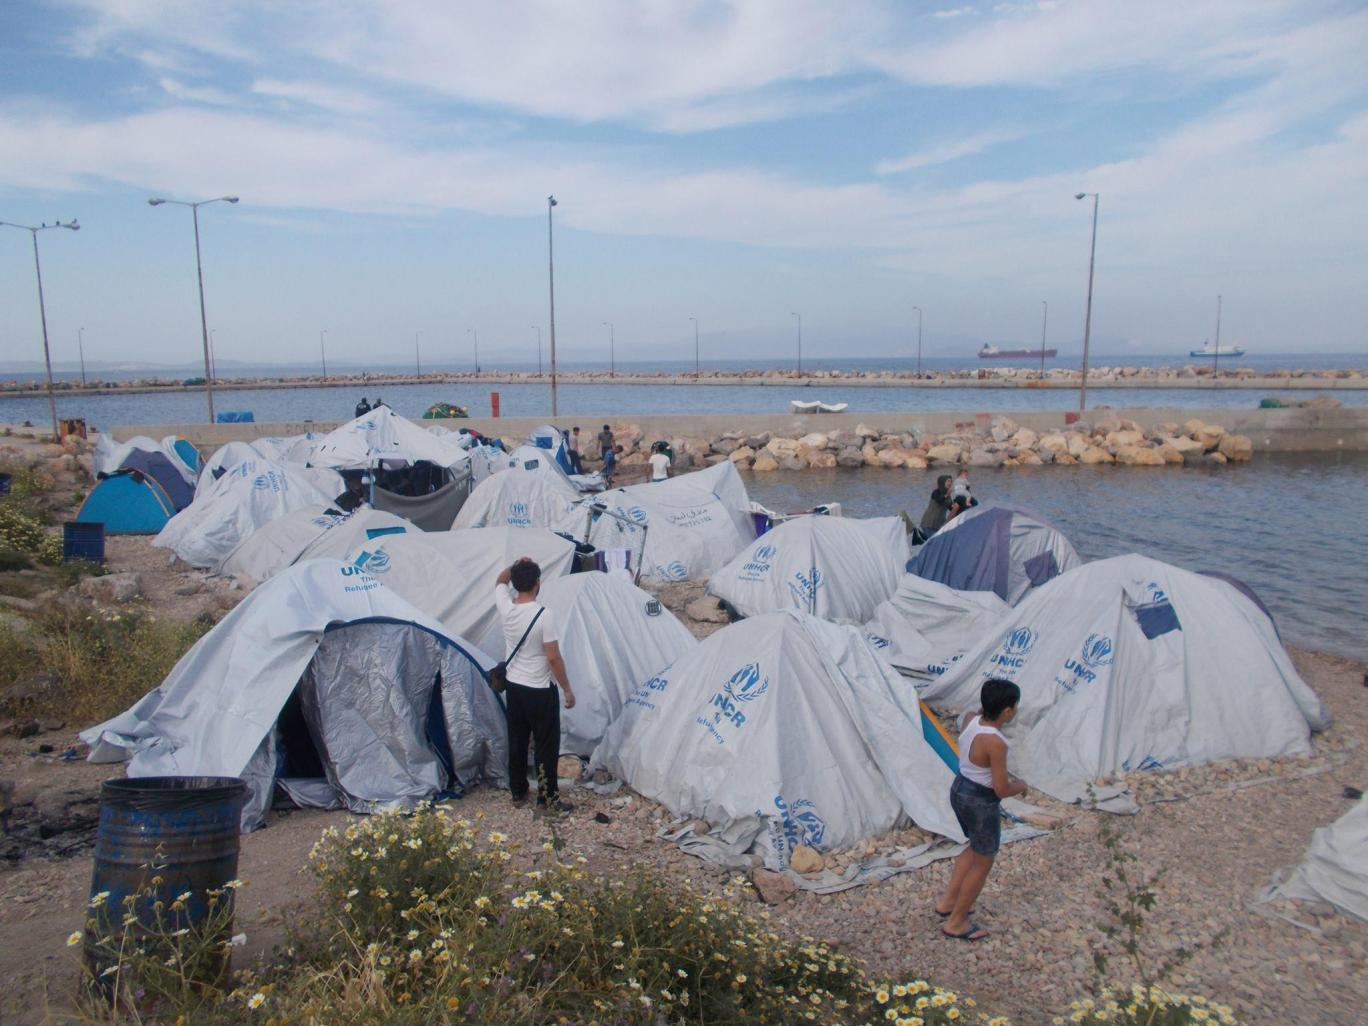 One in three refugees on Greek island of Chios has witnessed suicide since arriving, report finds